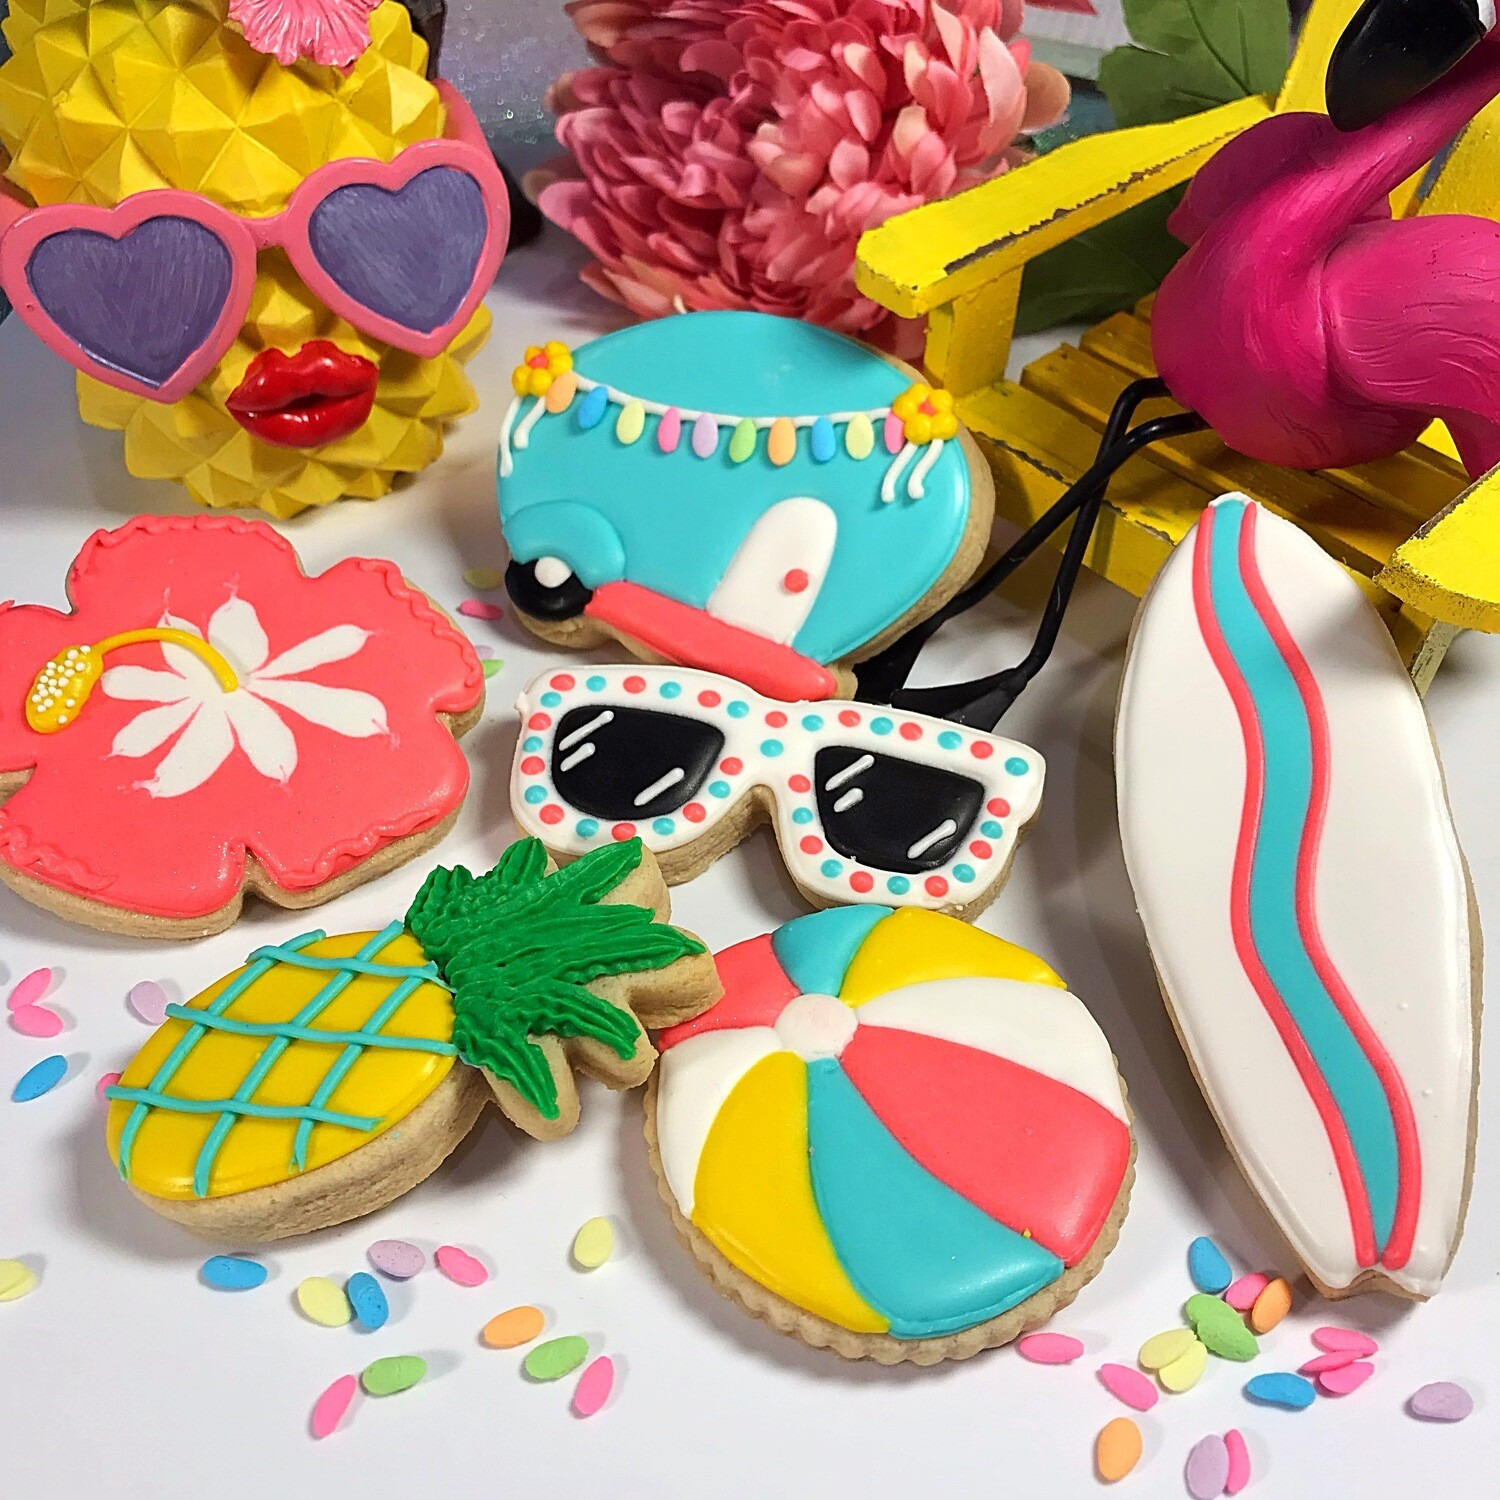 SUMMER TIME Decorating Workshop - TUESDAY, JUNE 18 at 6:30 p.m. (KIEPERSOL'S SALT KITCHEN) - SENIOR TICKET (Age 55+)